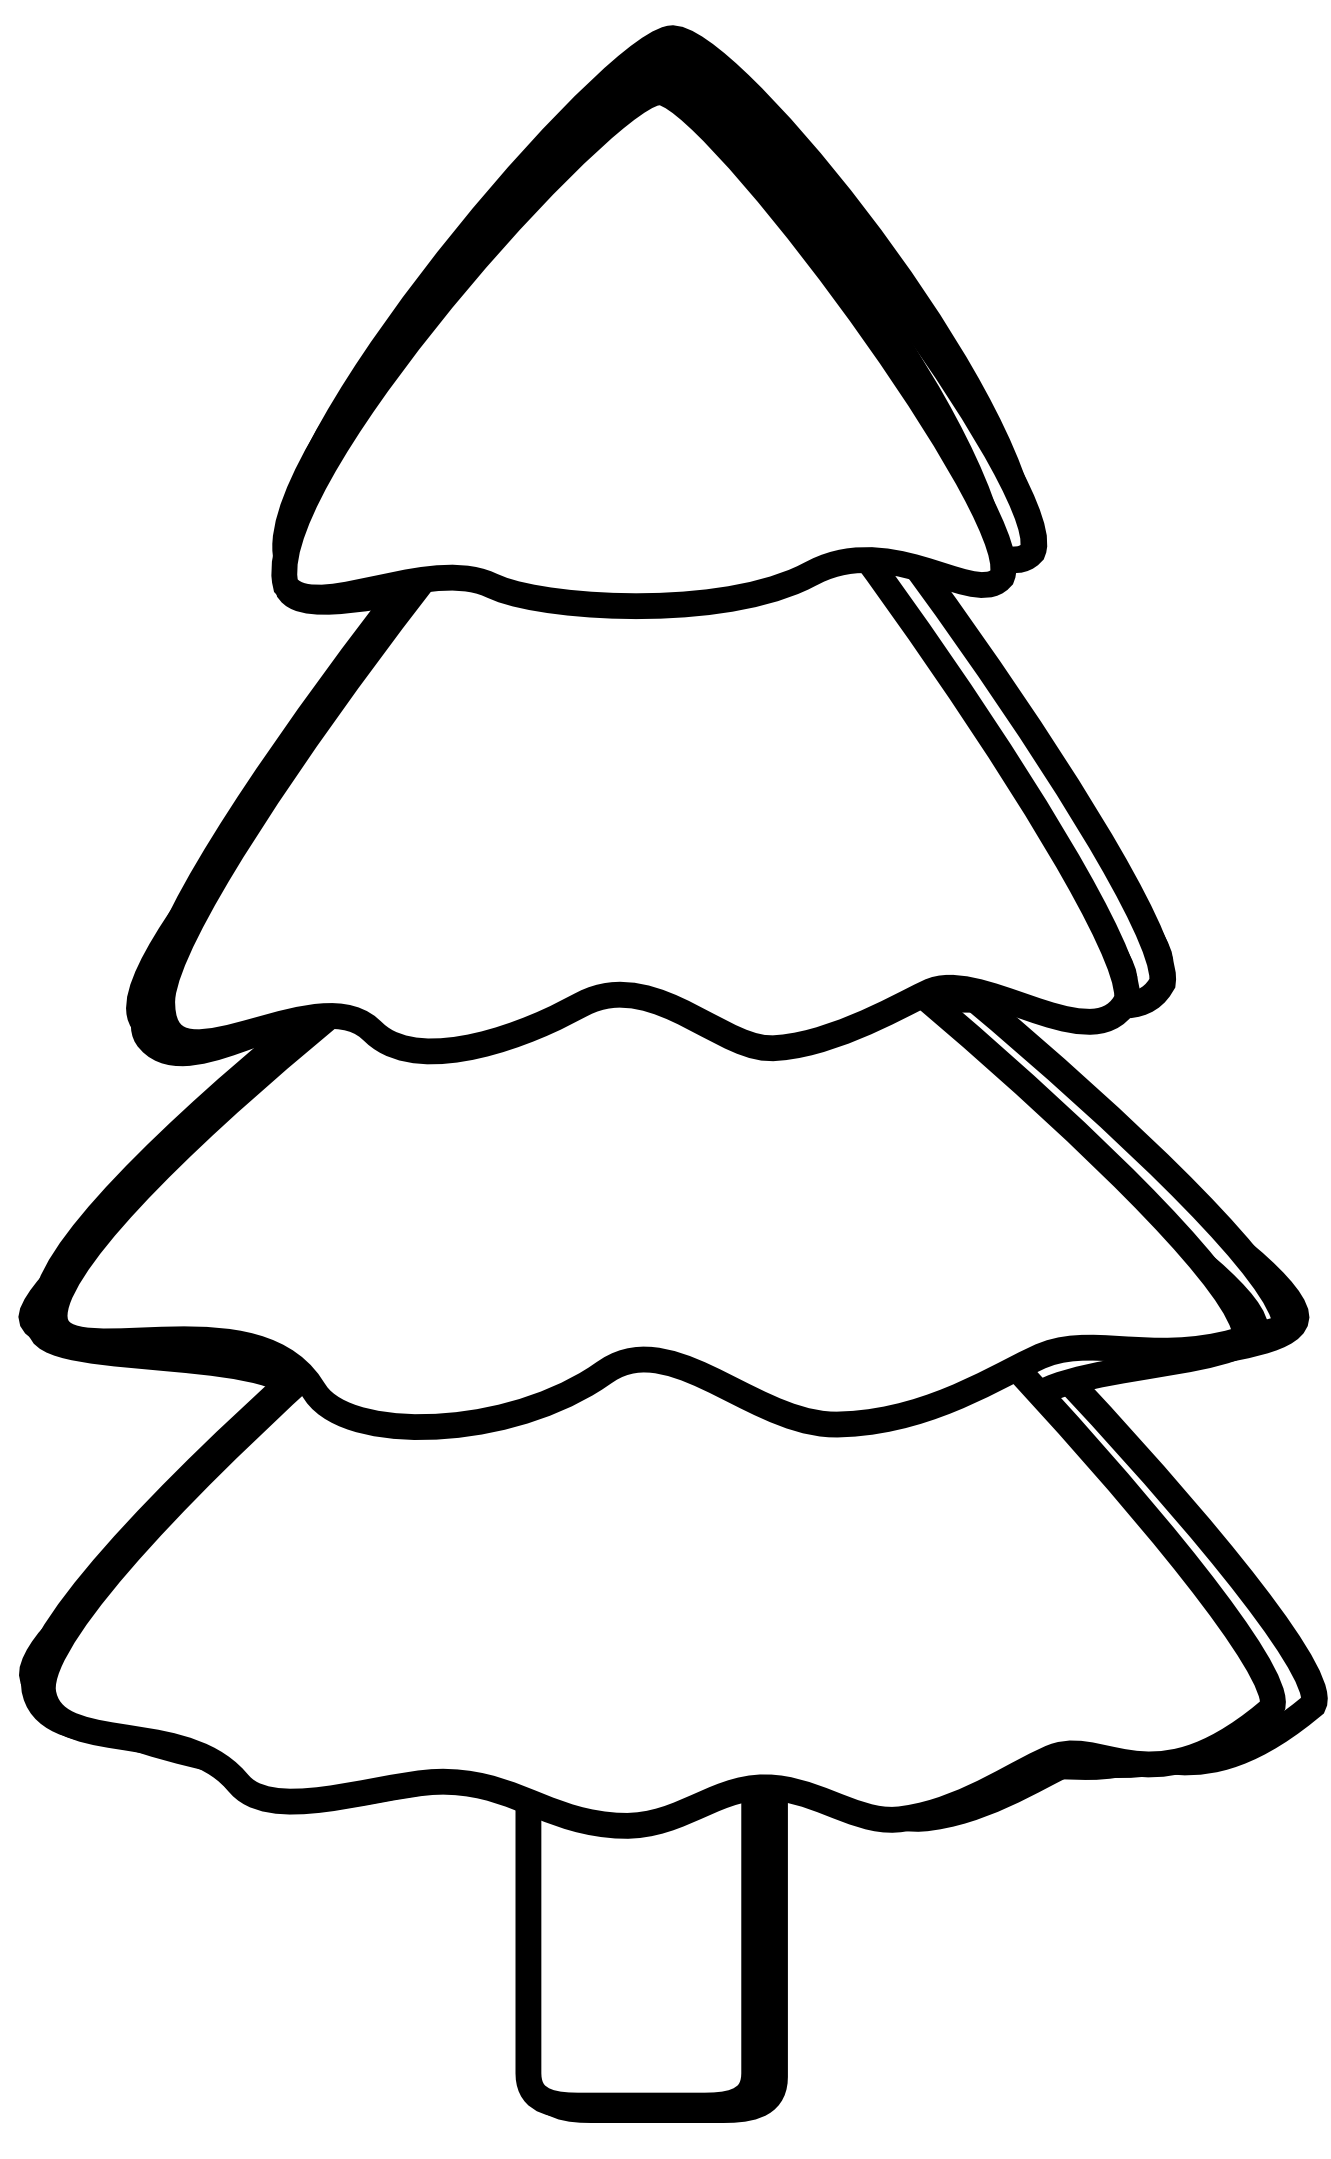 Tree Clip Art Black And White Clipart Black And White Clip Art Free Clip Art